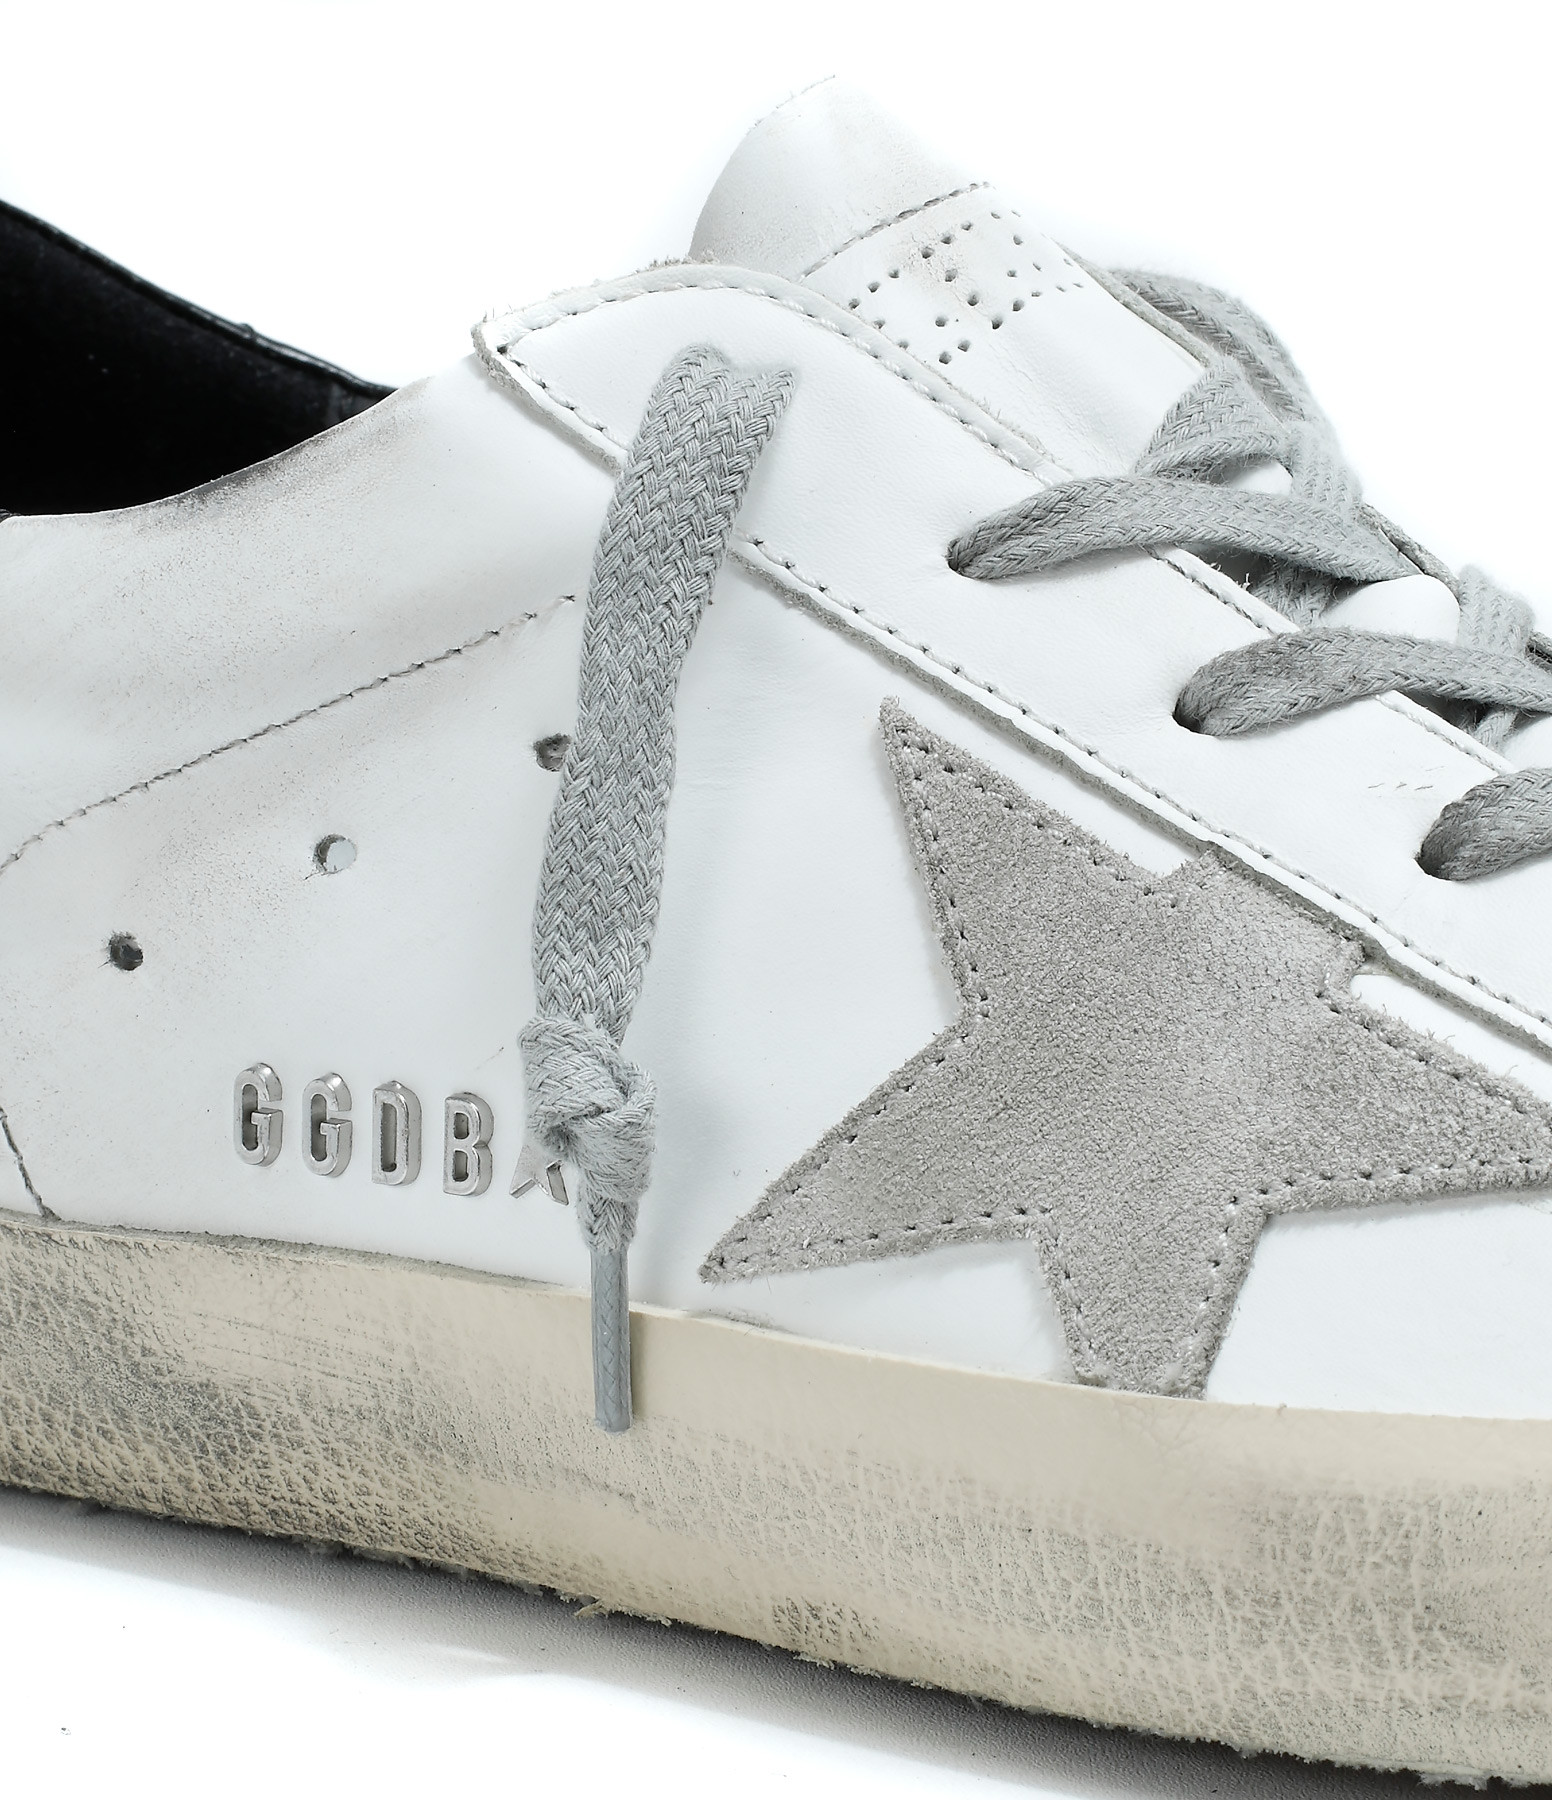 GOLDEN GOOSE - Baskets Superstar Blanc Noir Métal